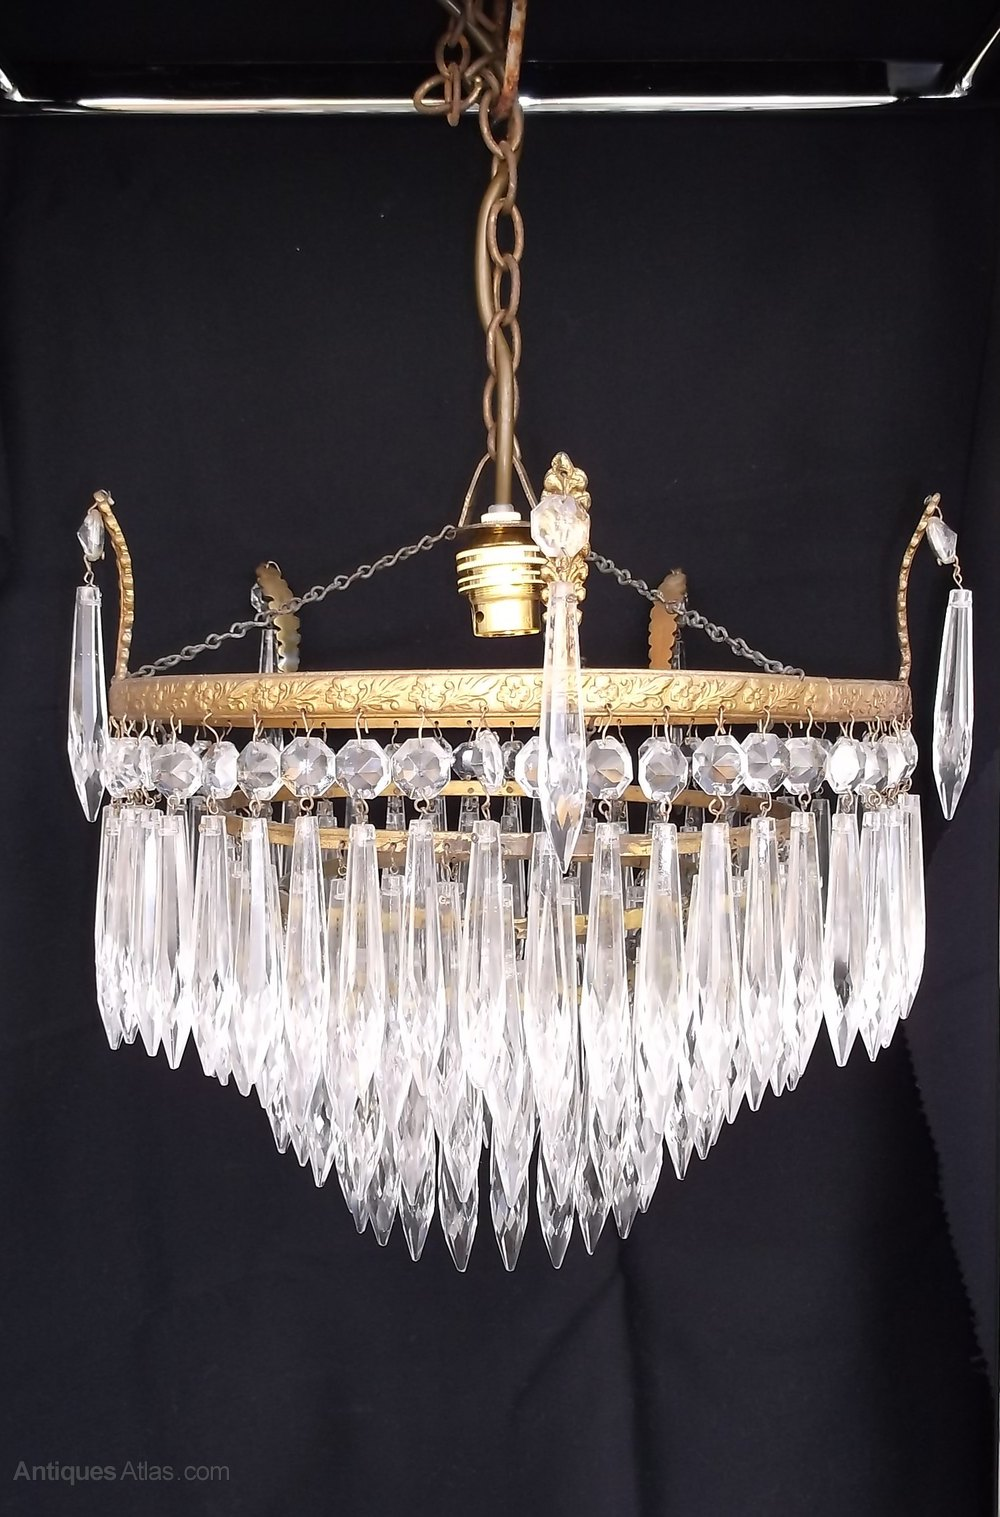 Antiques Atlas Antique 4 Tier Waterfall Crystal Chandelier